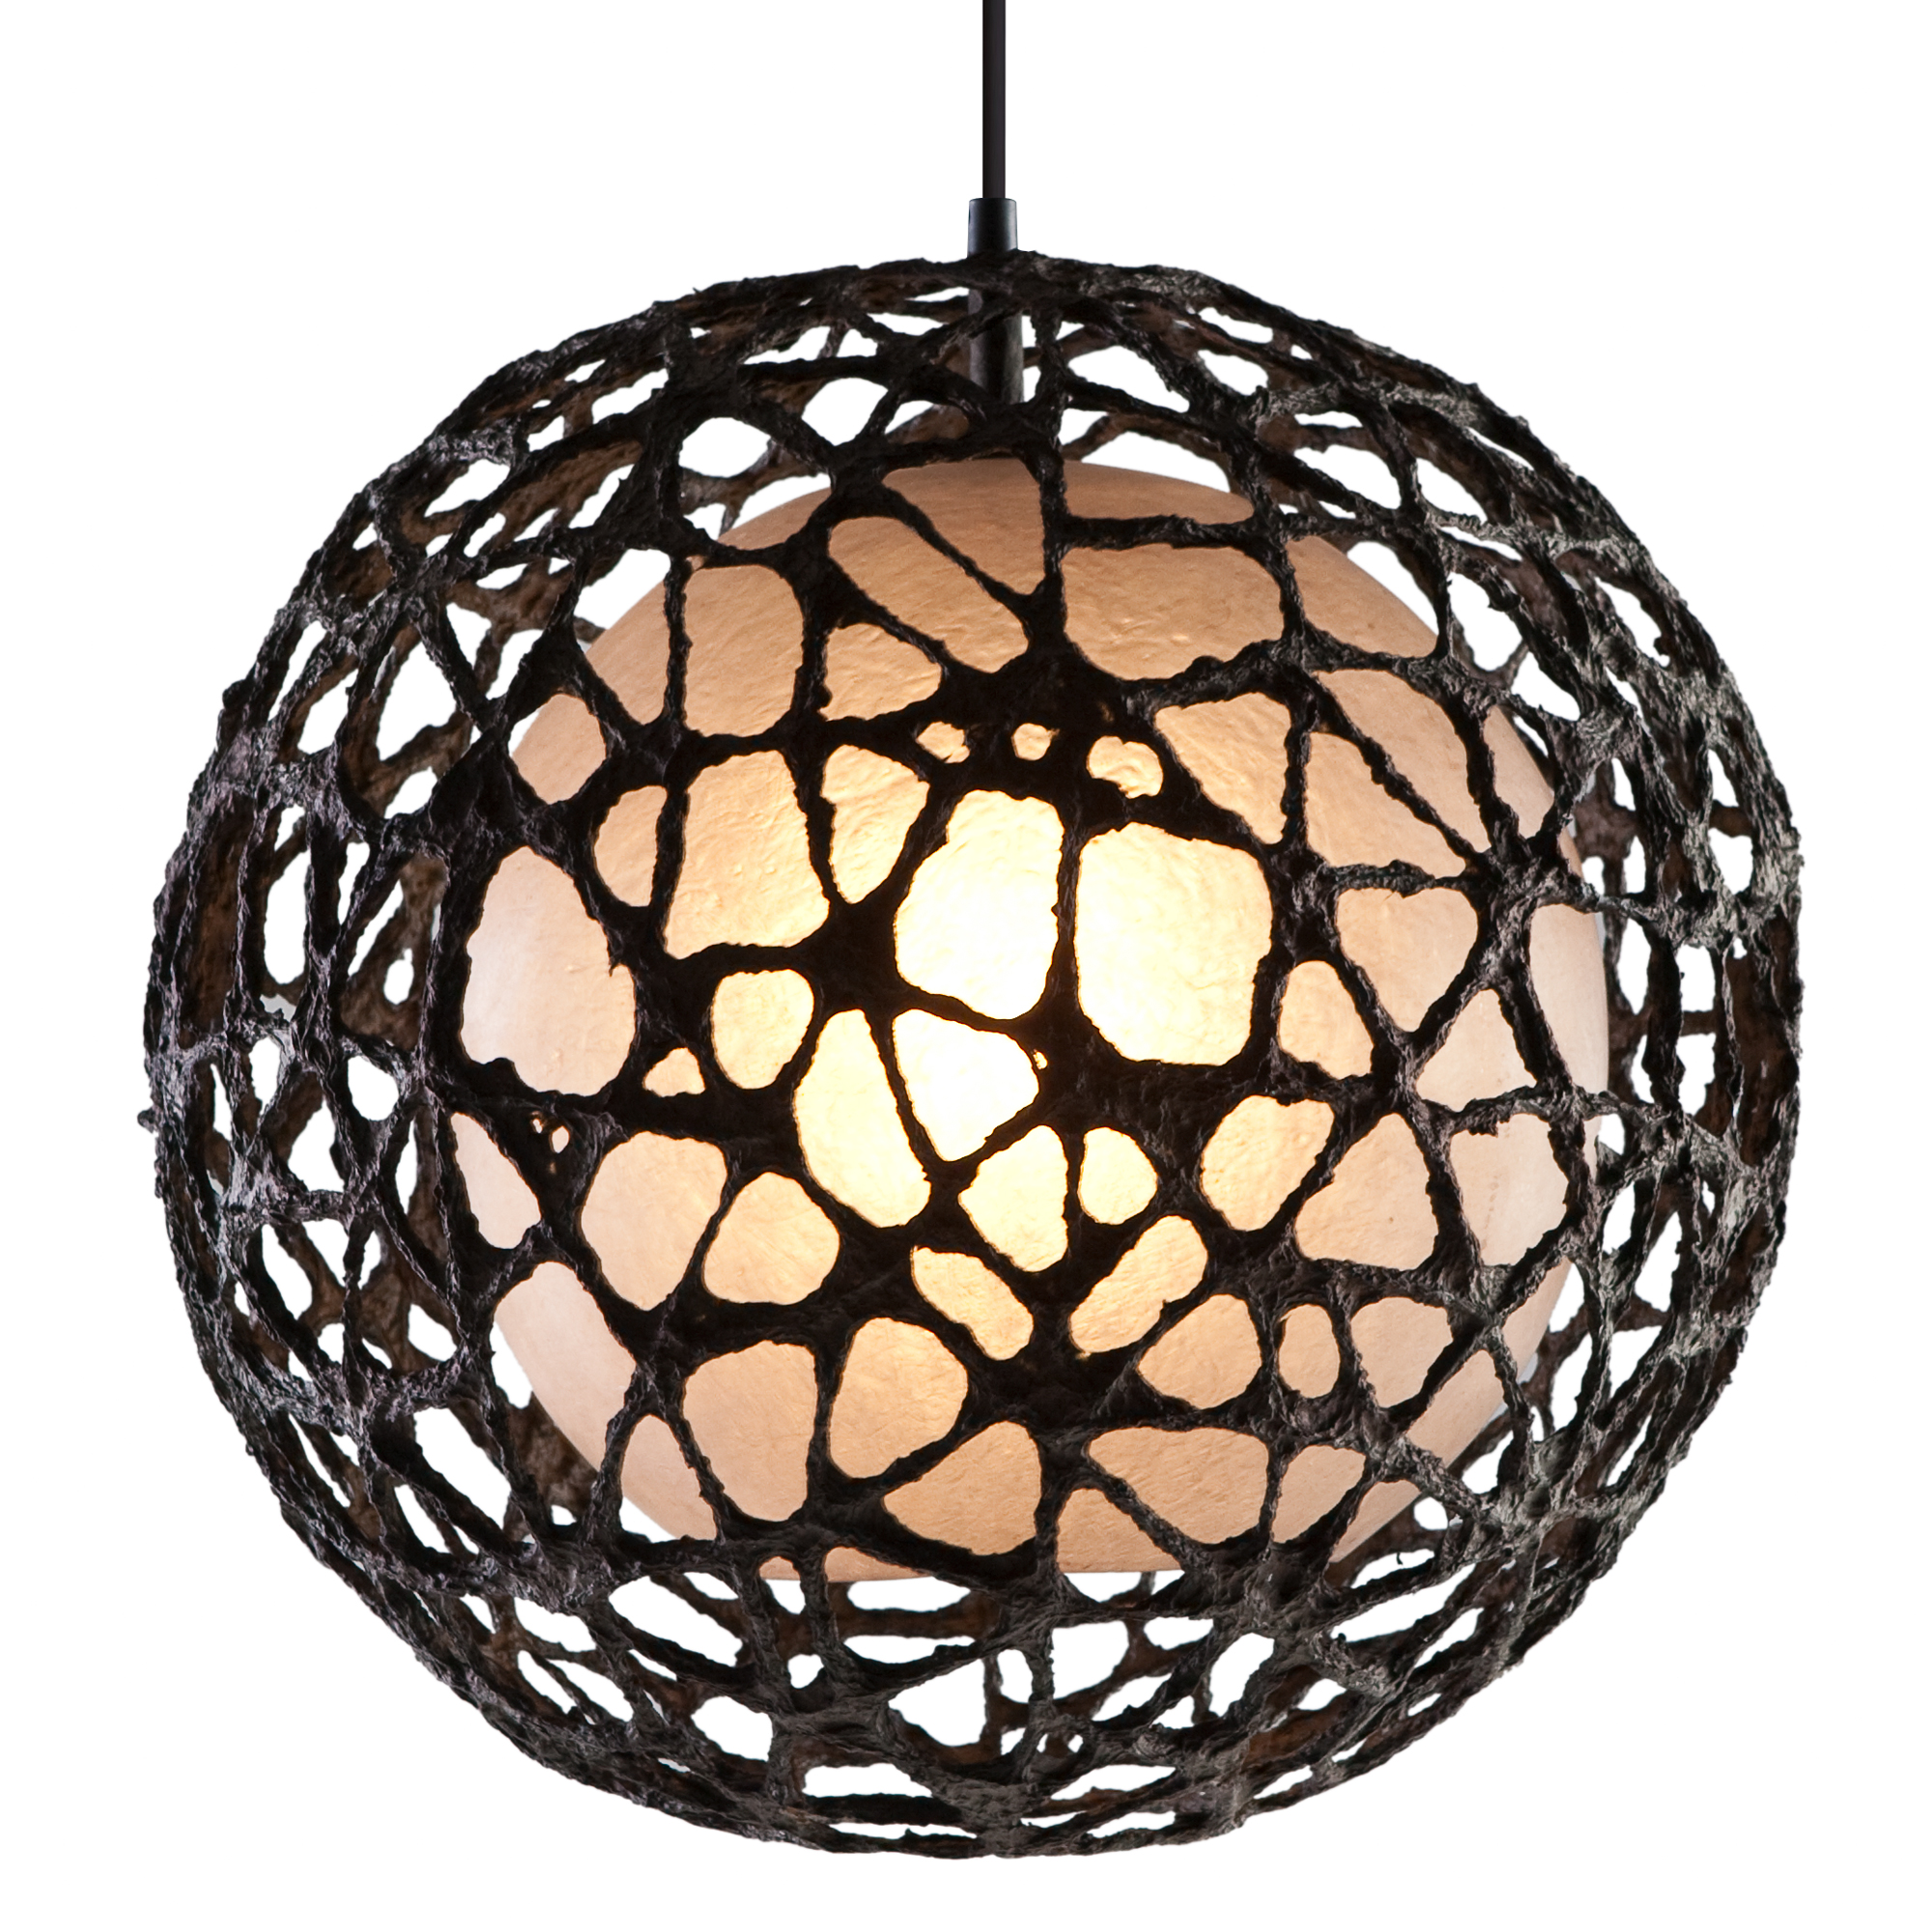 Hanging Light Round: C U C ME Round Pendant By Hive